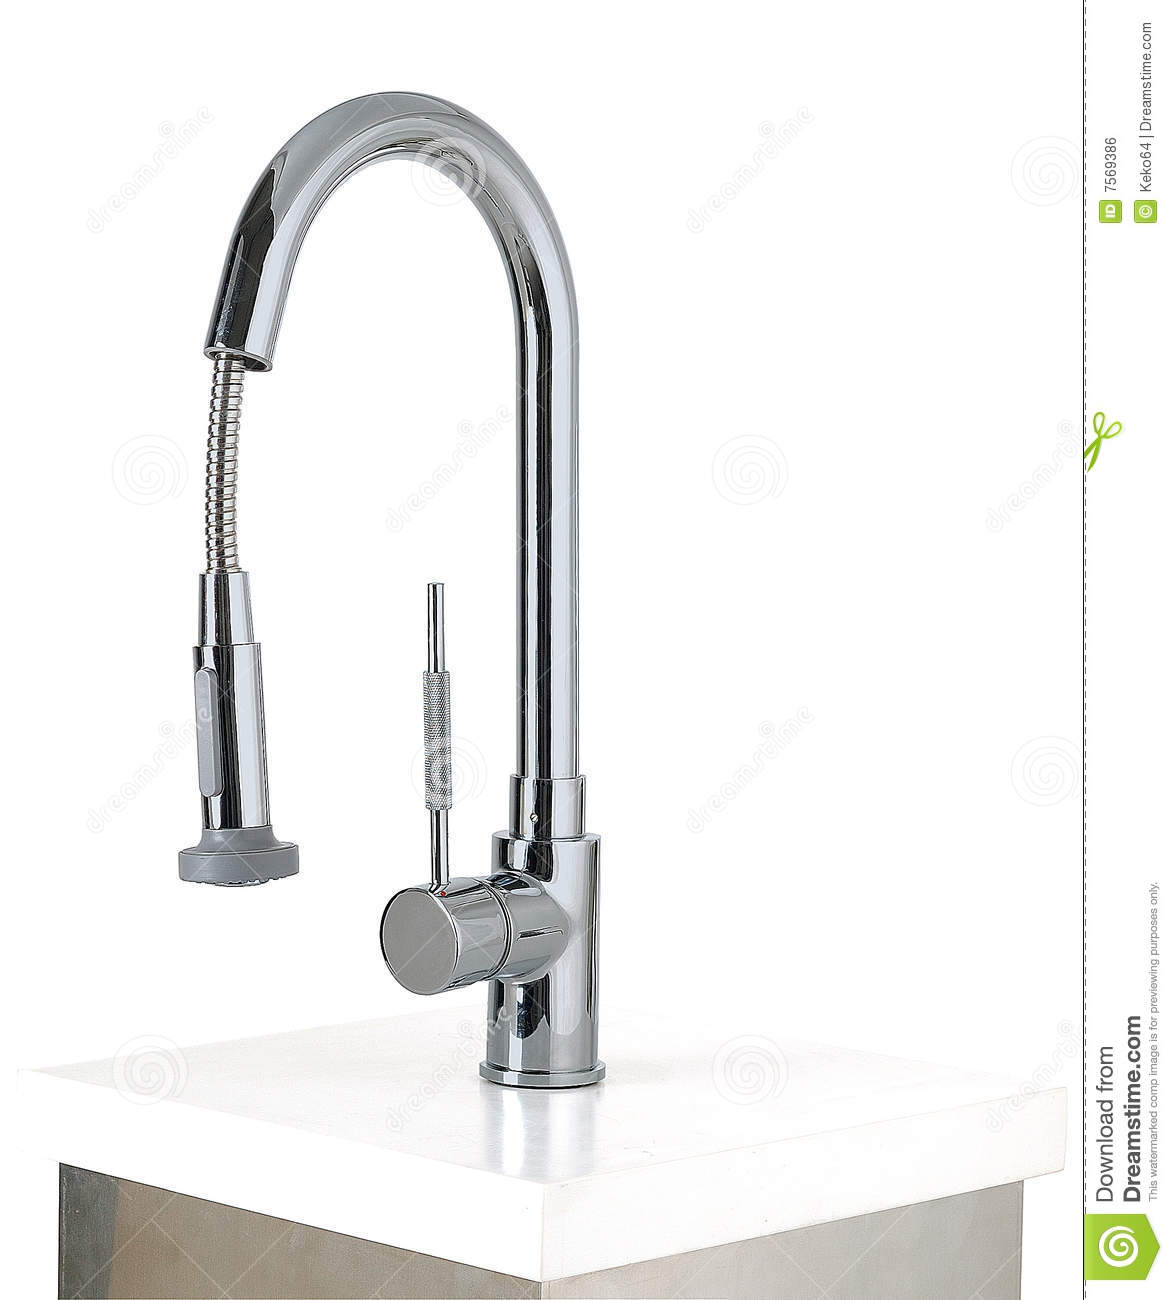 water faucet royalty free stock image image 7569386